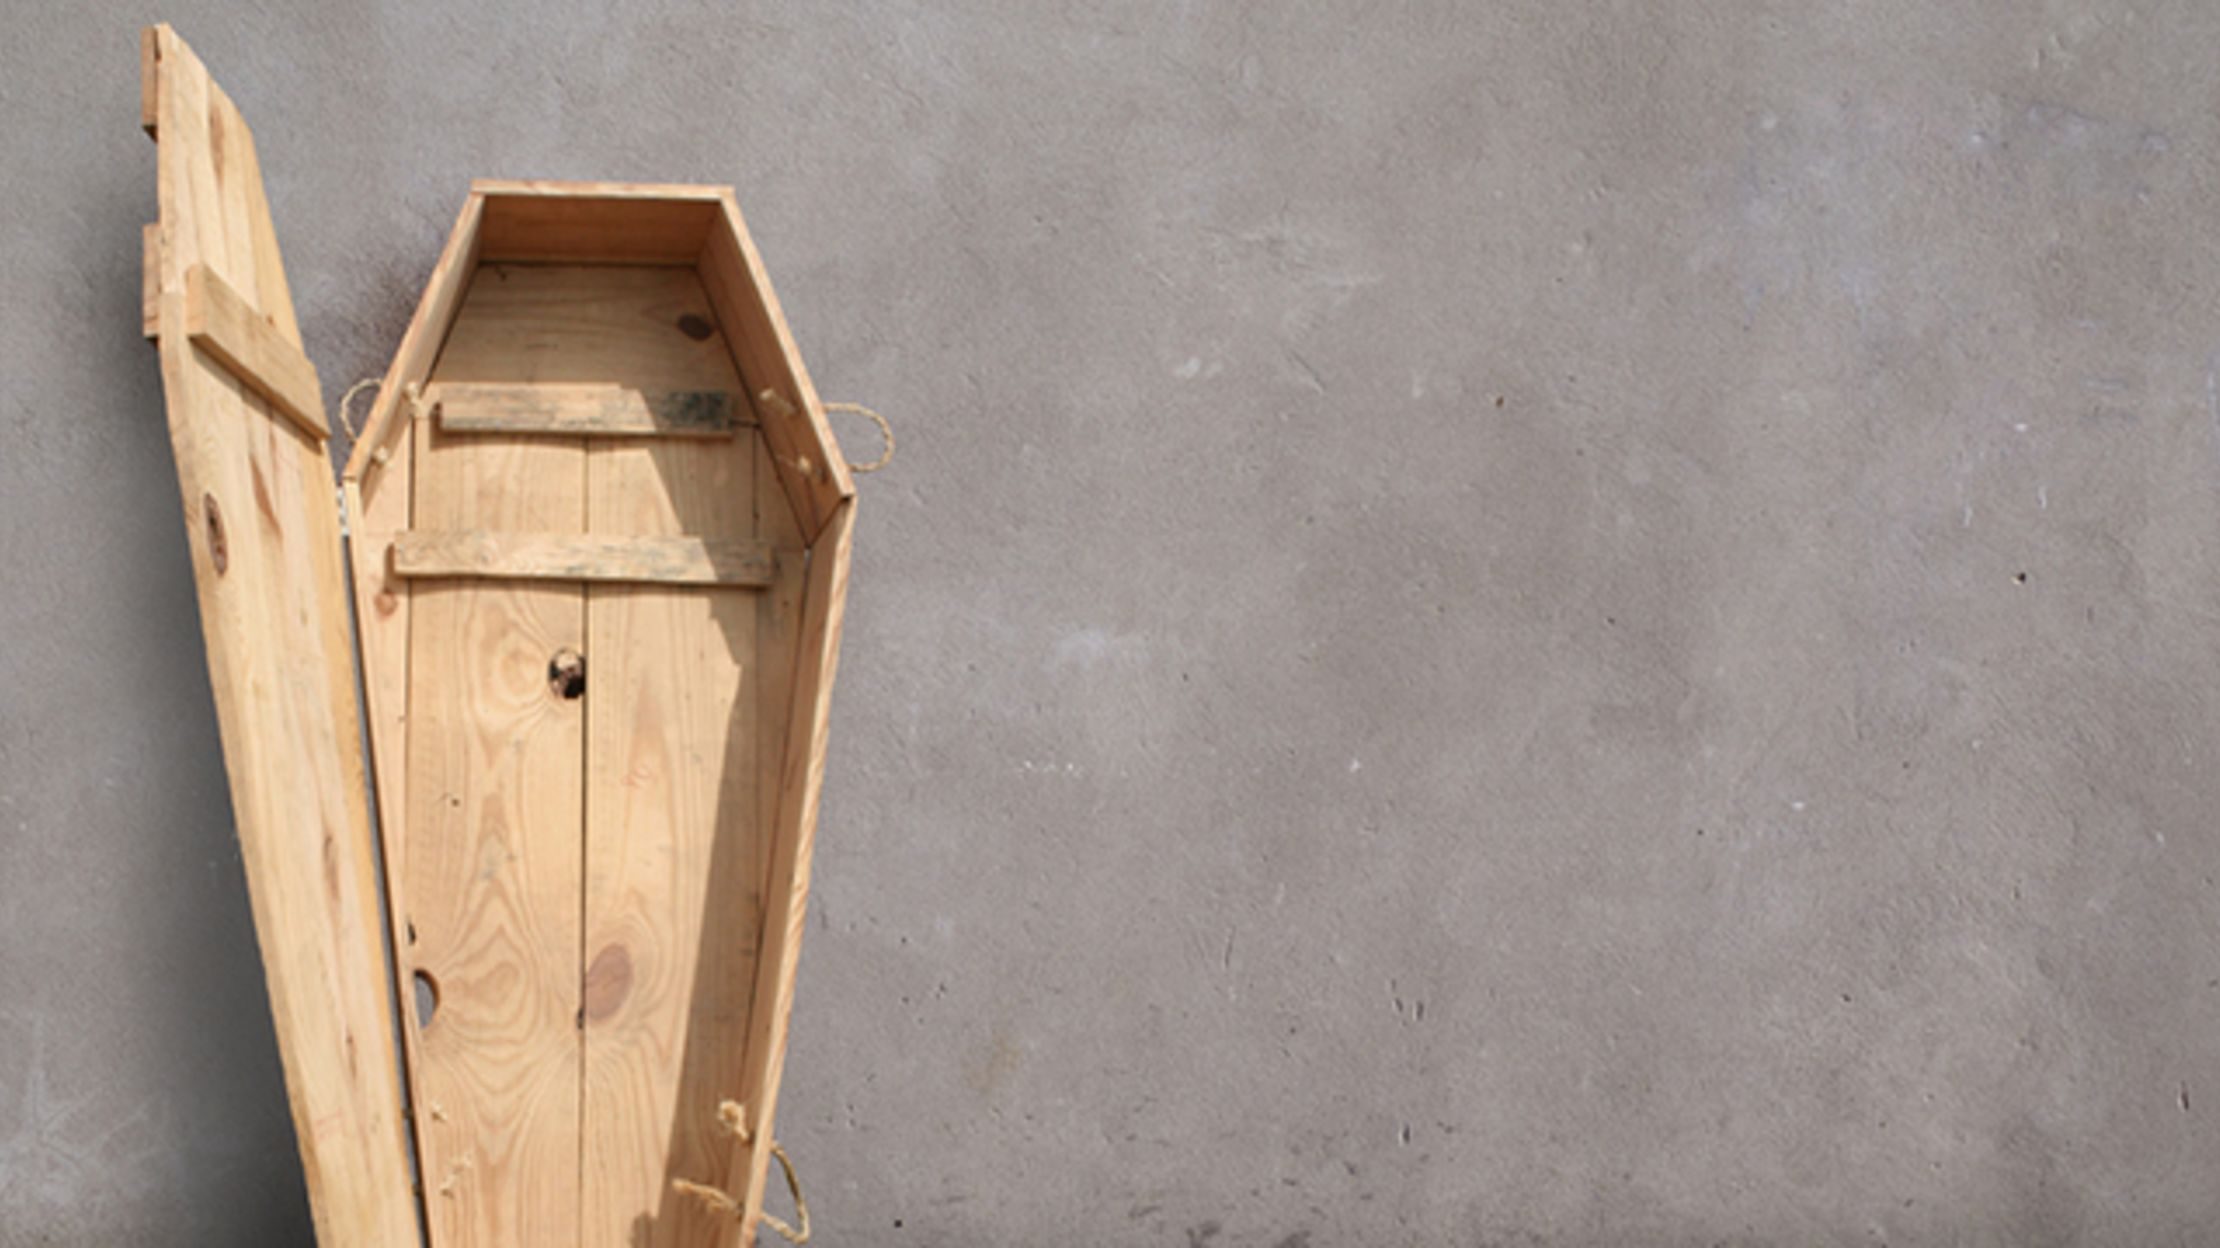 9 Unexpected Reuses for Coffins | Mental Floss